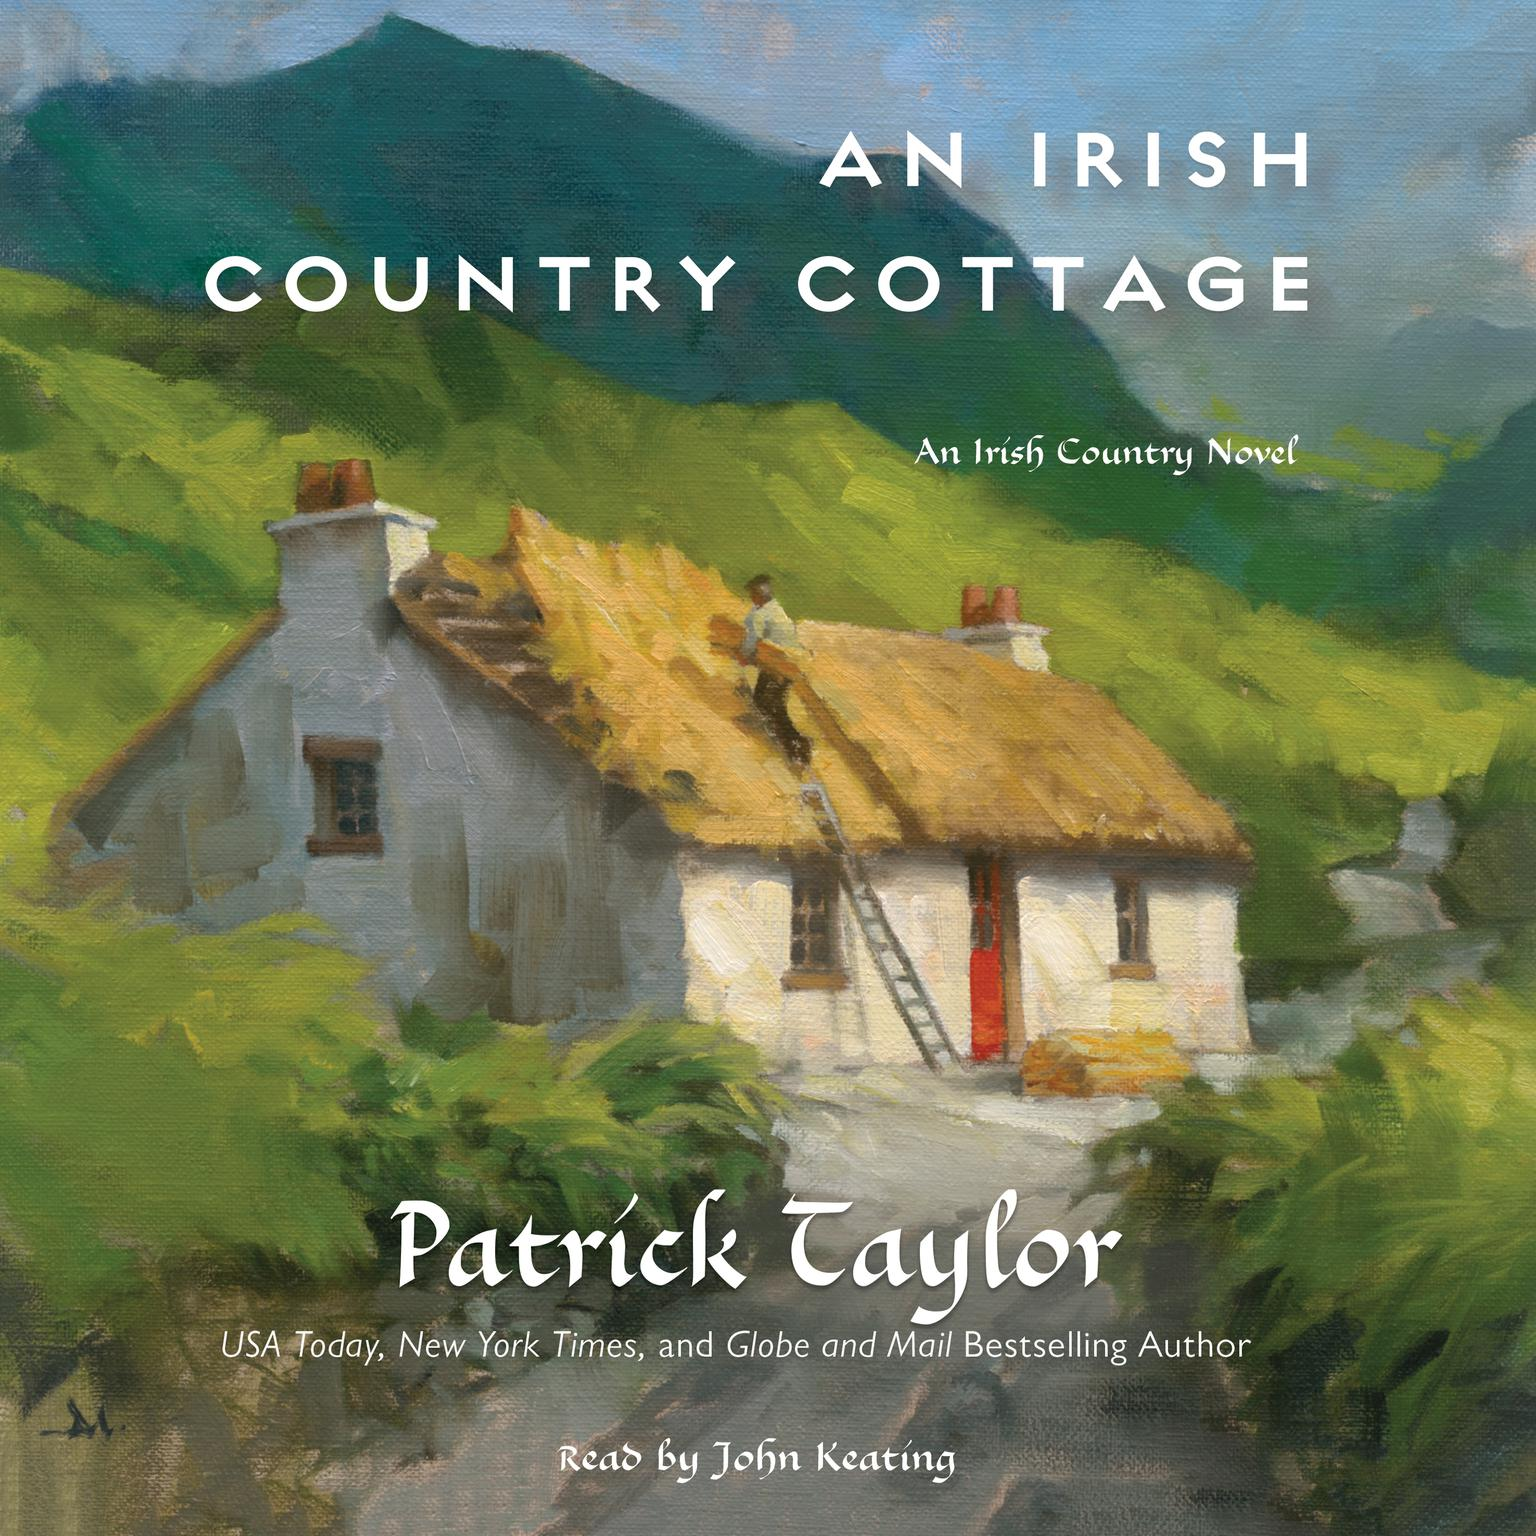 An Irish Country Cottage: An Irish Country Novel Audiobook, by Patrick Taylor